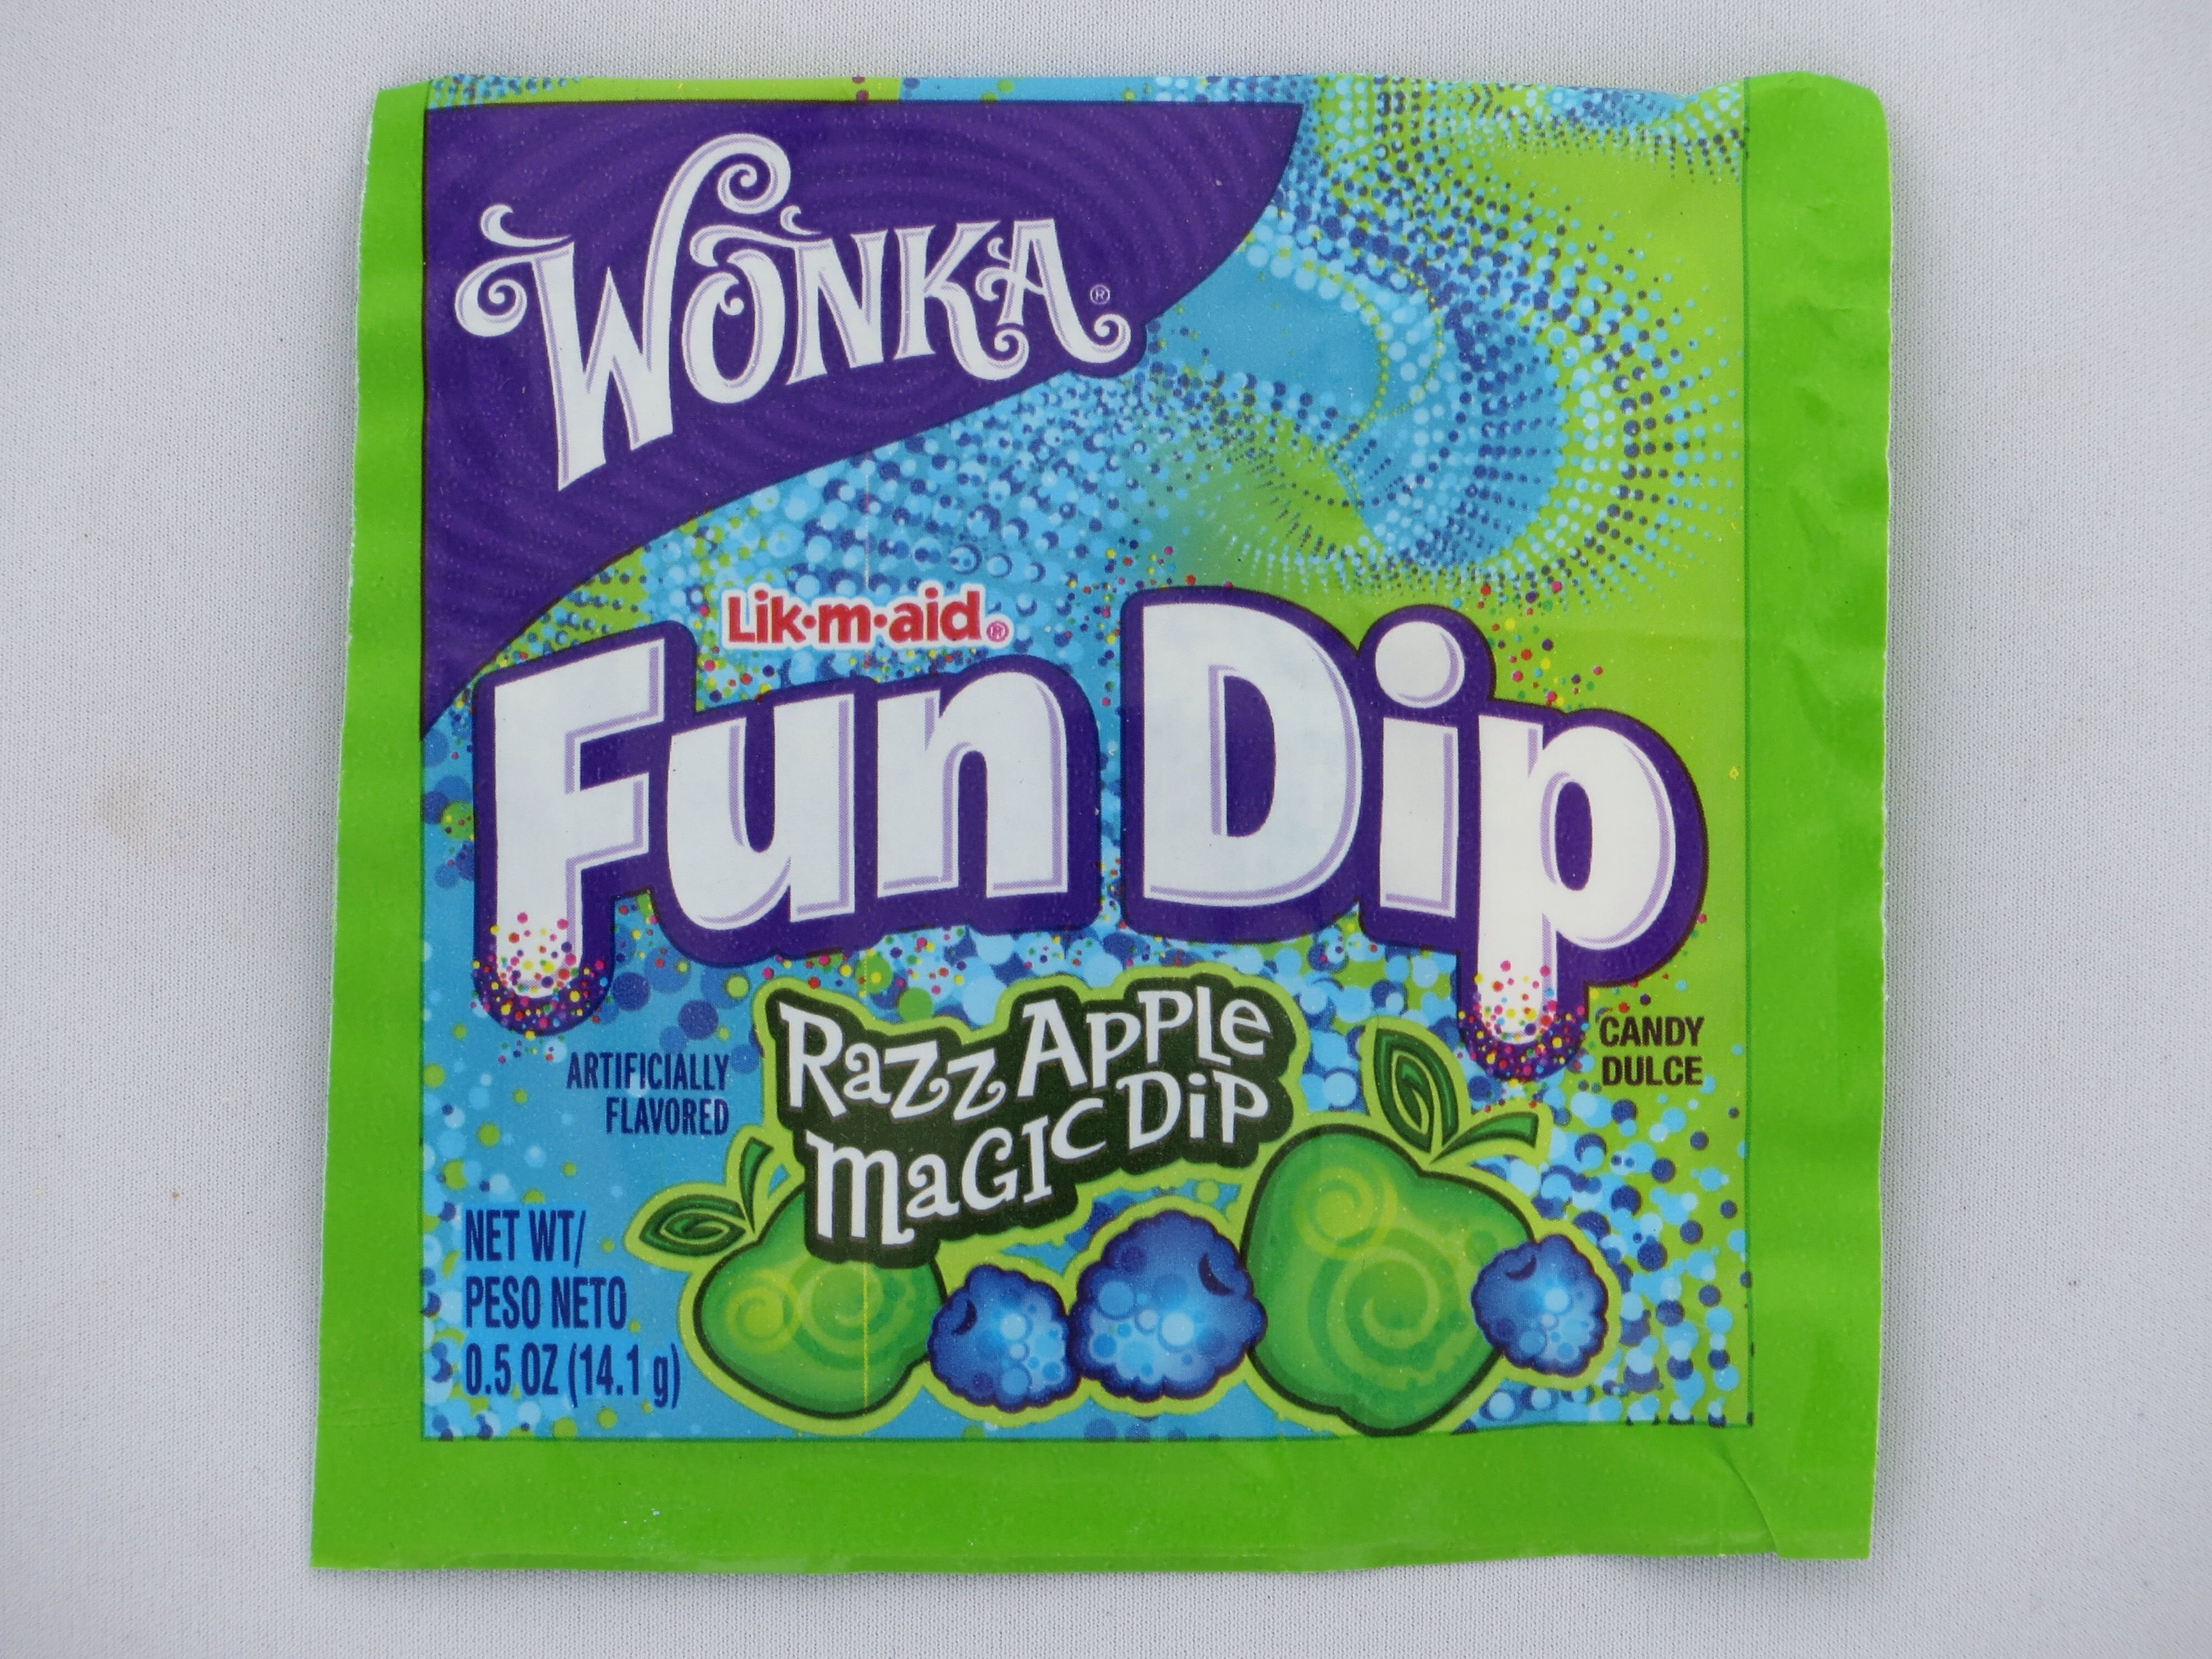 You can get fun dip anywhere. You can get at gas stations